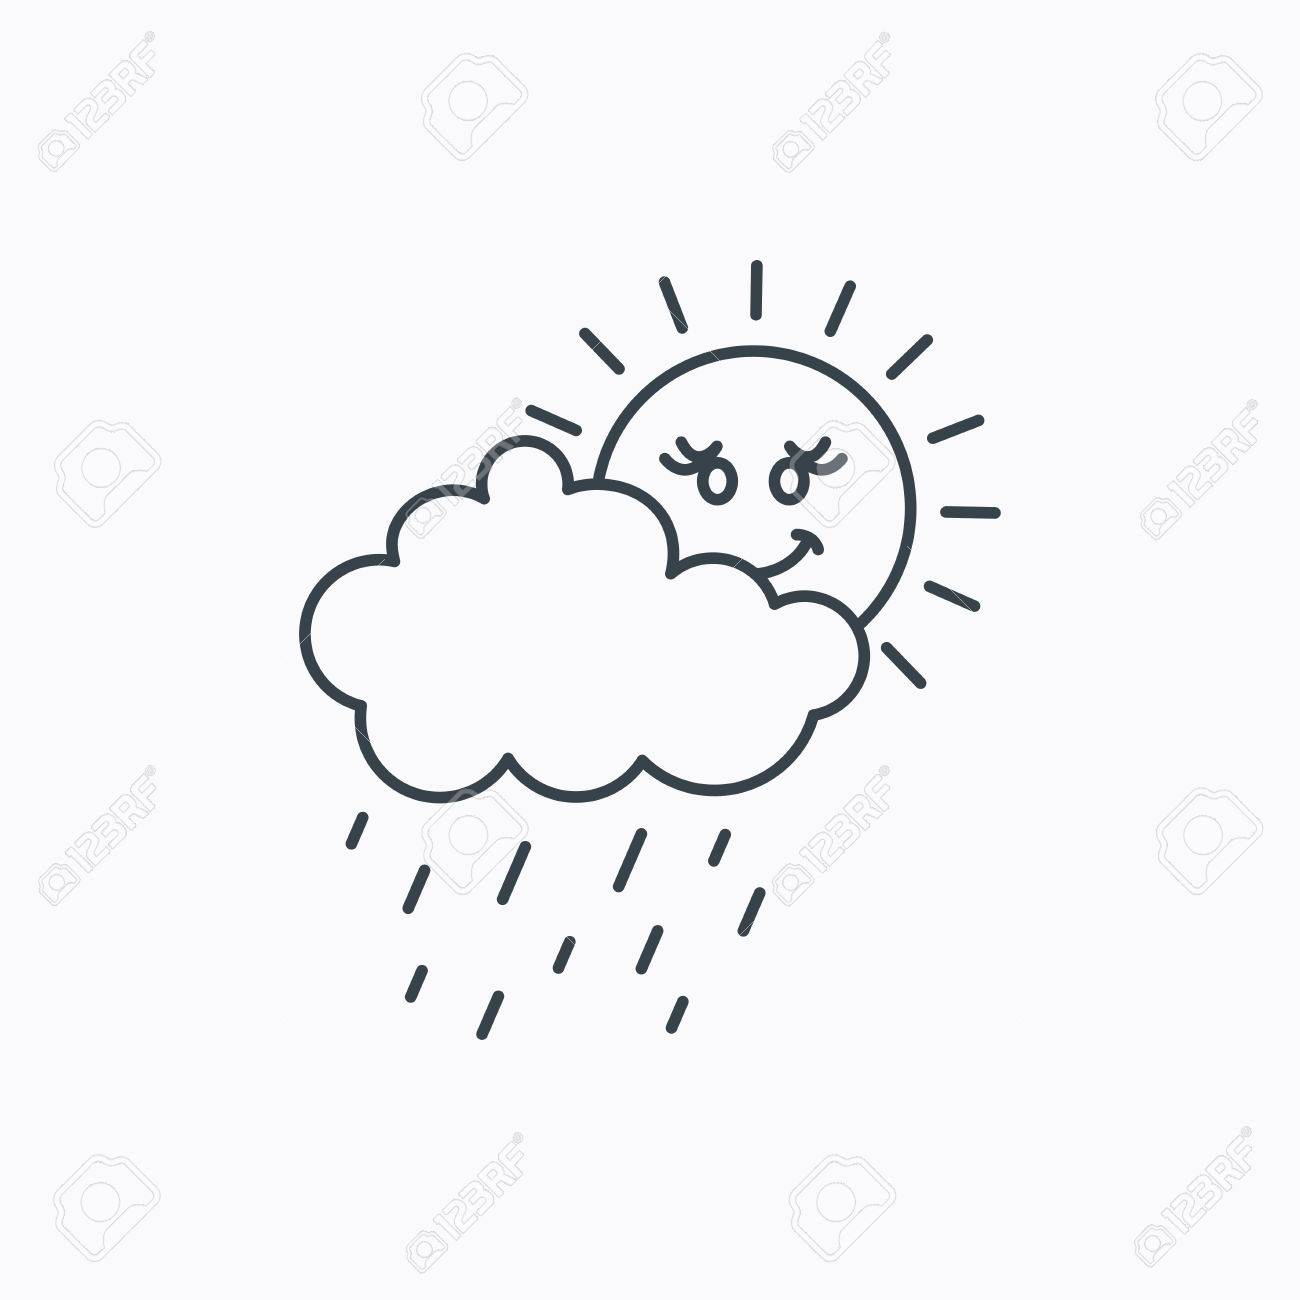 Rain and sun icon  Water drops and cloud sign  Rainy overcast